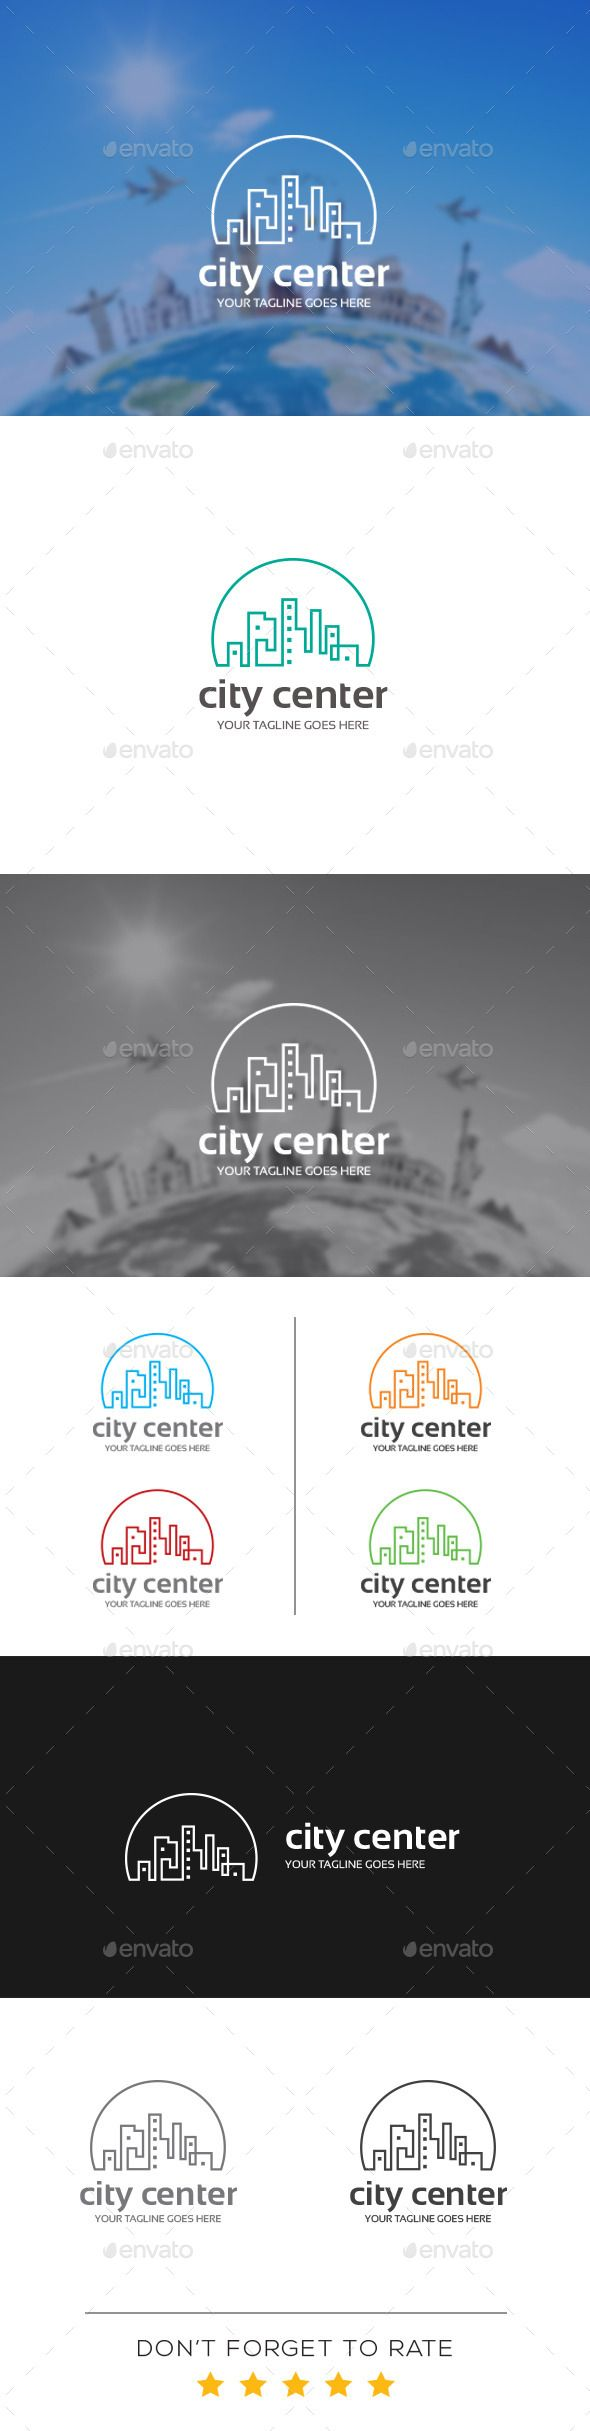 City Center Logo Tempalte #design #logotype Download: http://graphicriver.net/item/city-center-logo-template/10939346?ref=ksioks